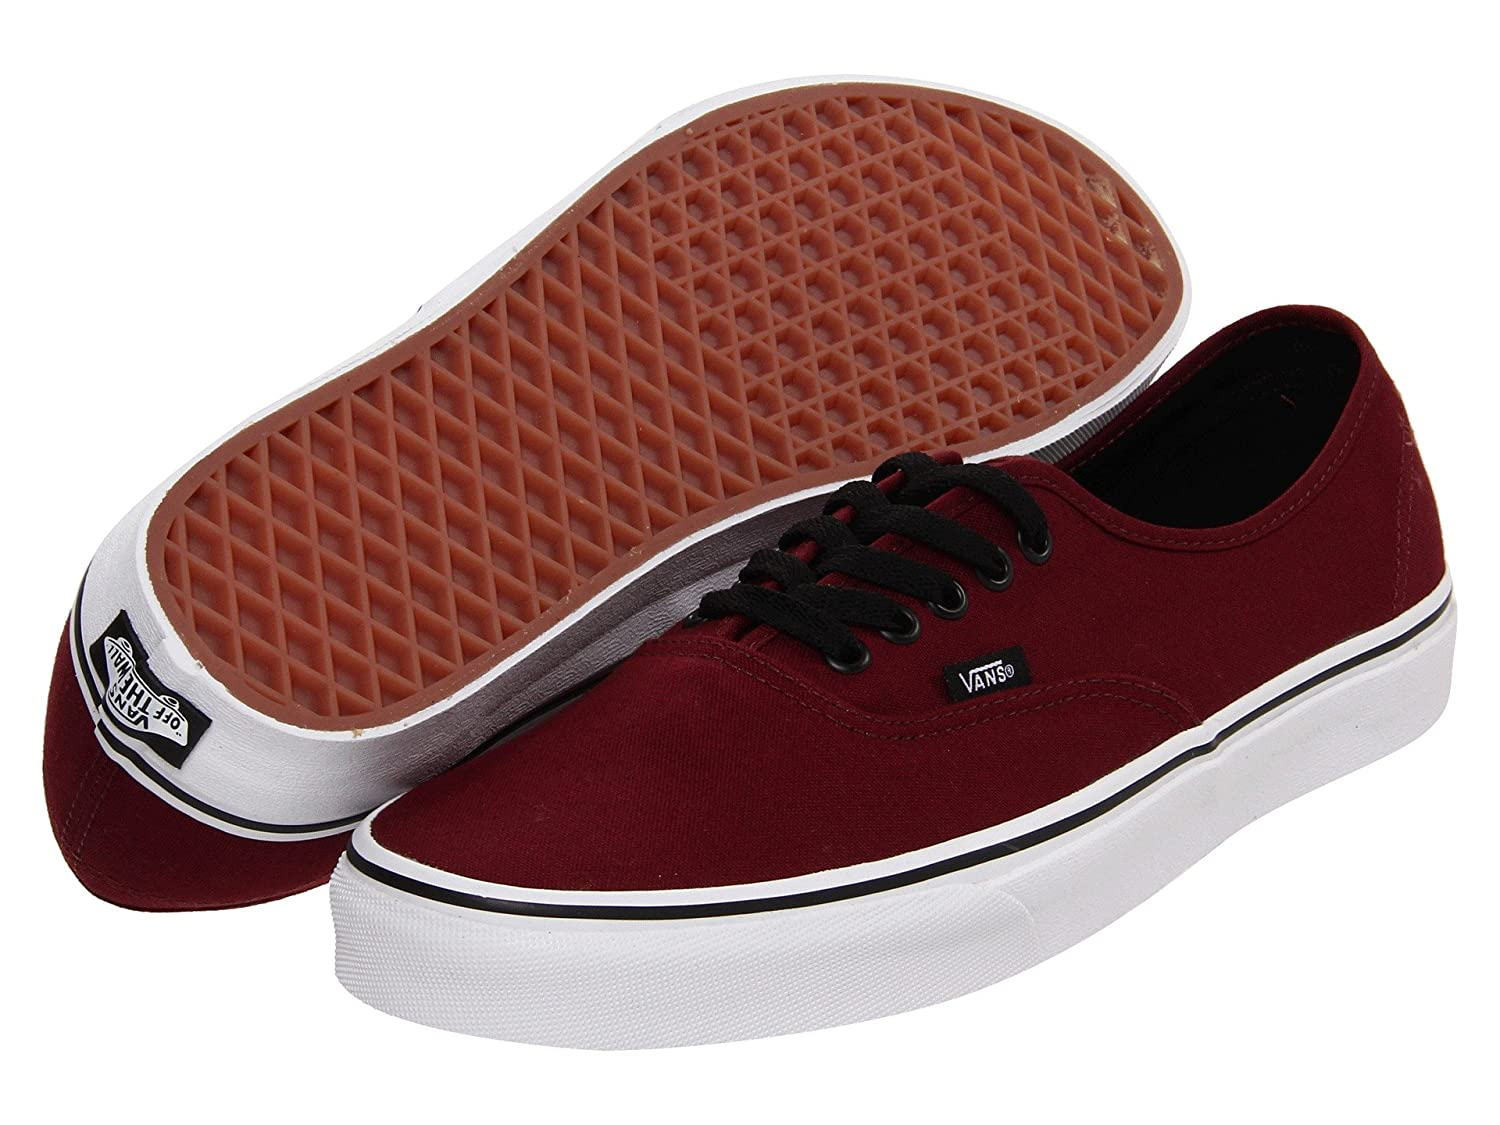 [バンズ] VANS VANS AUTHENTIC VEE3 B01M4PS96N 6 Men 7.5 Women|ポートロイヤル(Port Royale) ポートロイヤル(Port Royale) 6 Men 7.5 Women